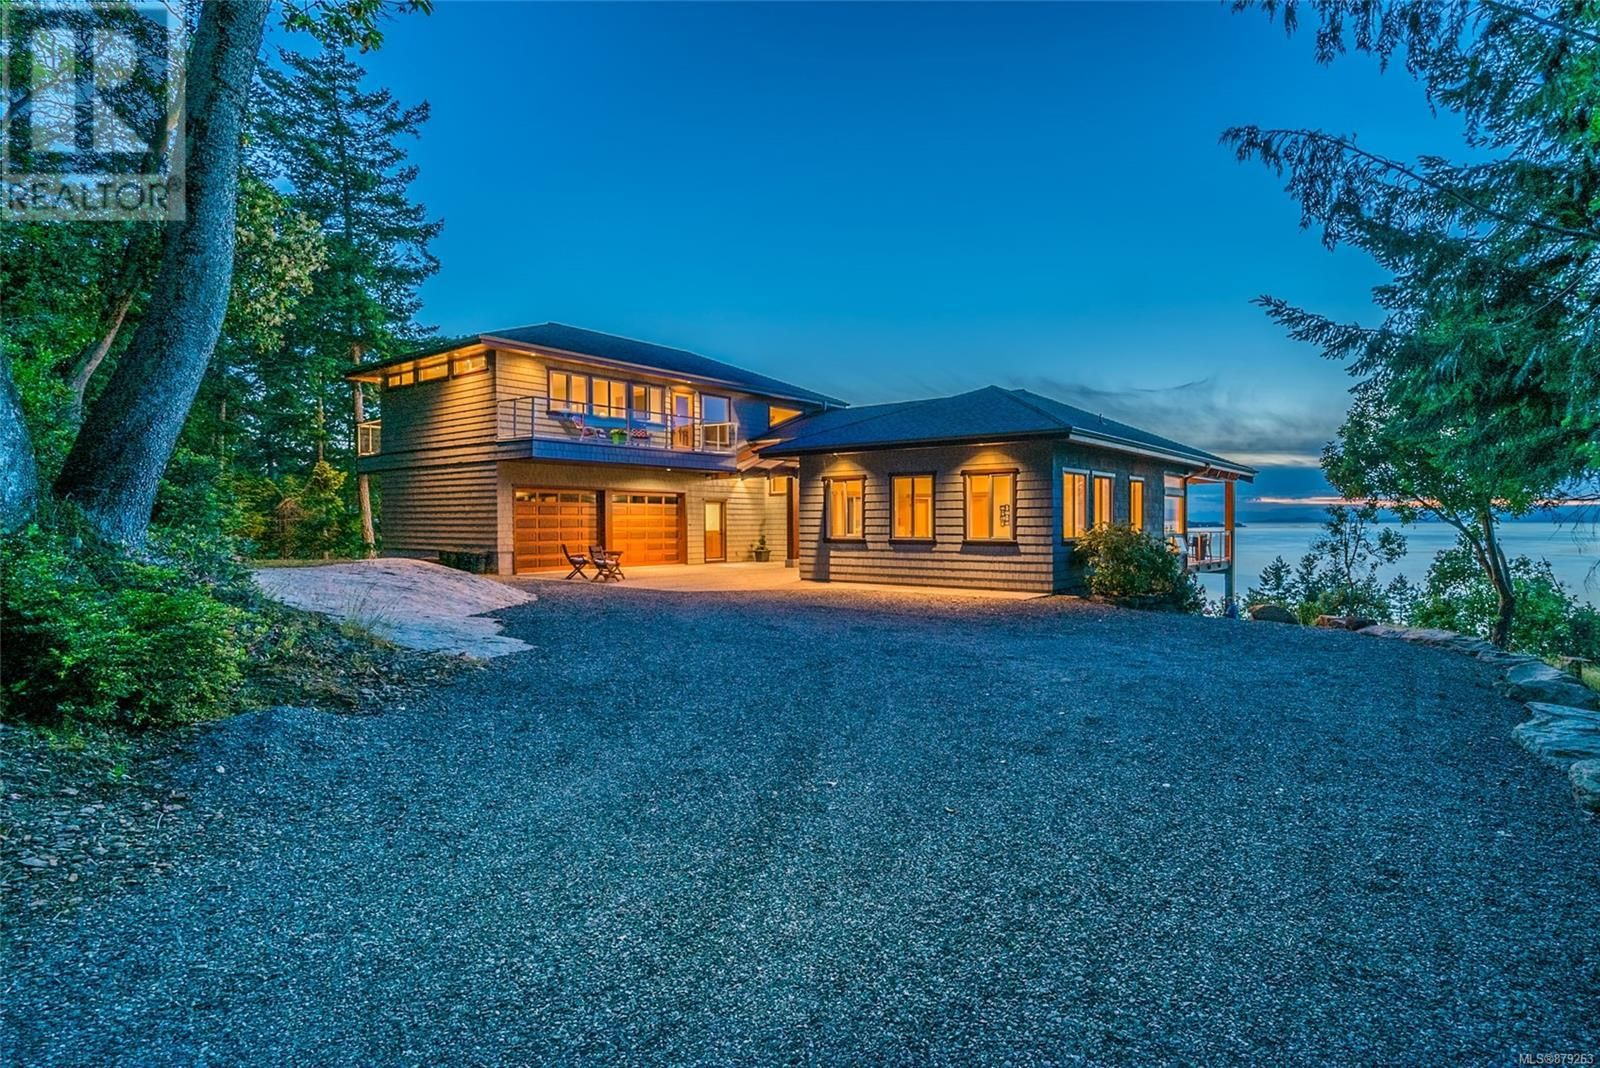 Photo 3: Photos: 825 Duthie Ave in Gabriola Island: House for sale : MLS®# 879263